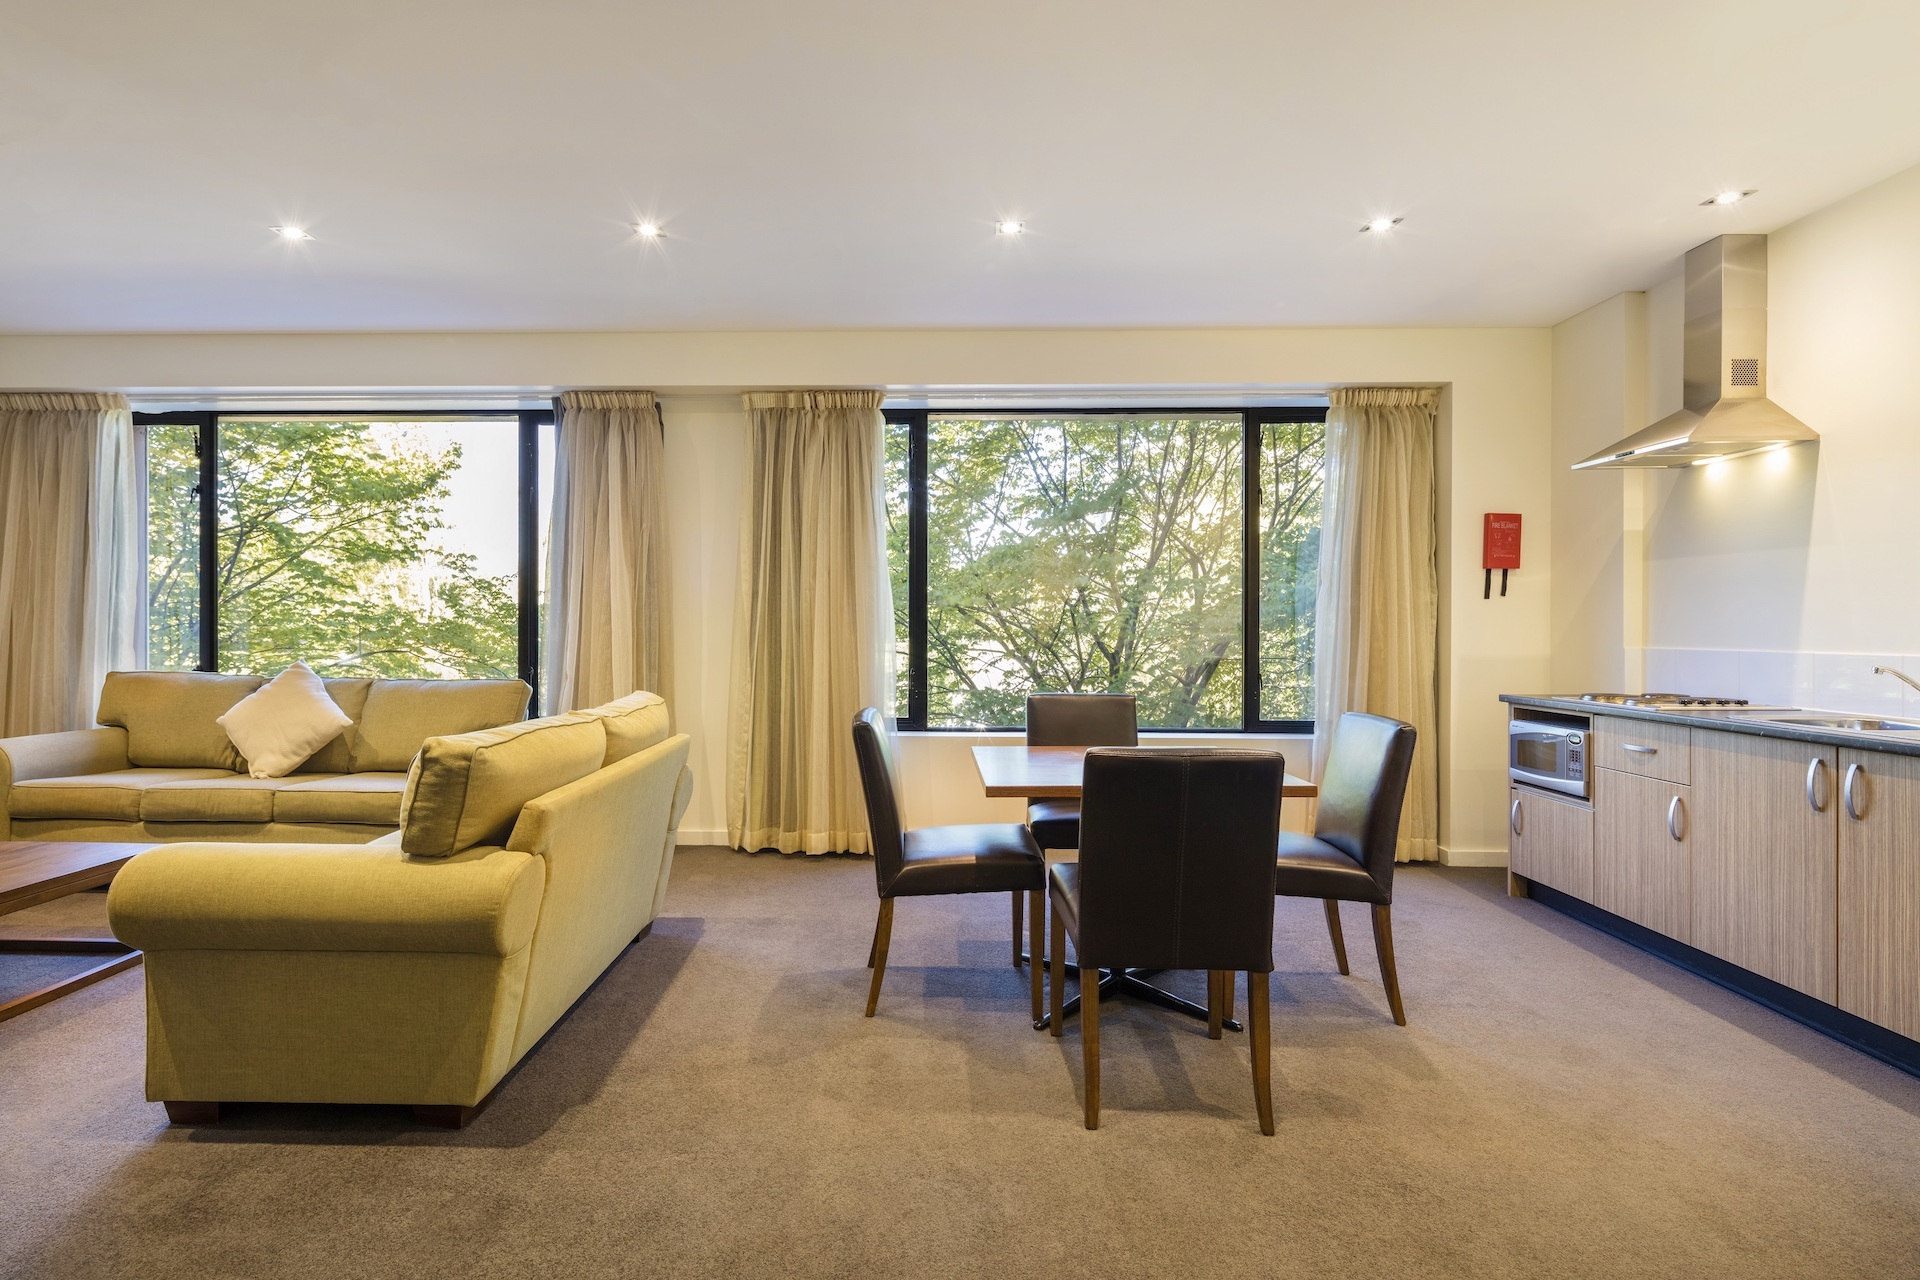 Lounge, table and kitchenette in Deluxe Suite Accommodation Room | Crowne Plaza Canberra